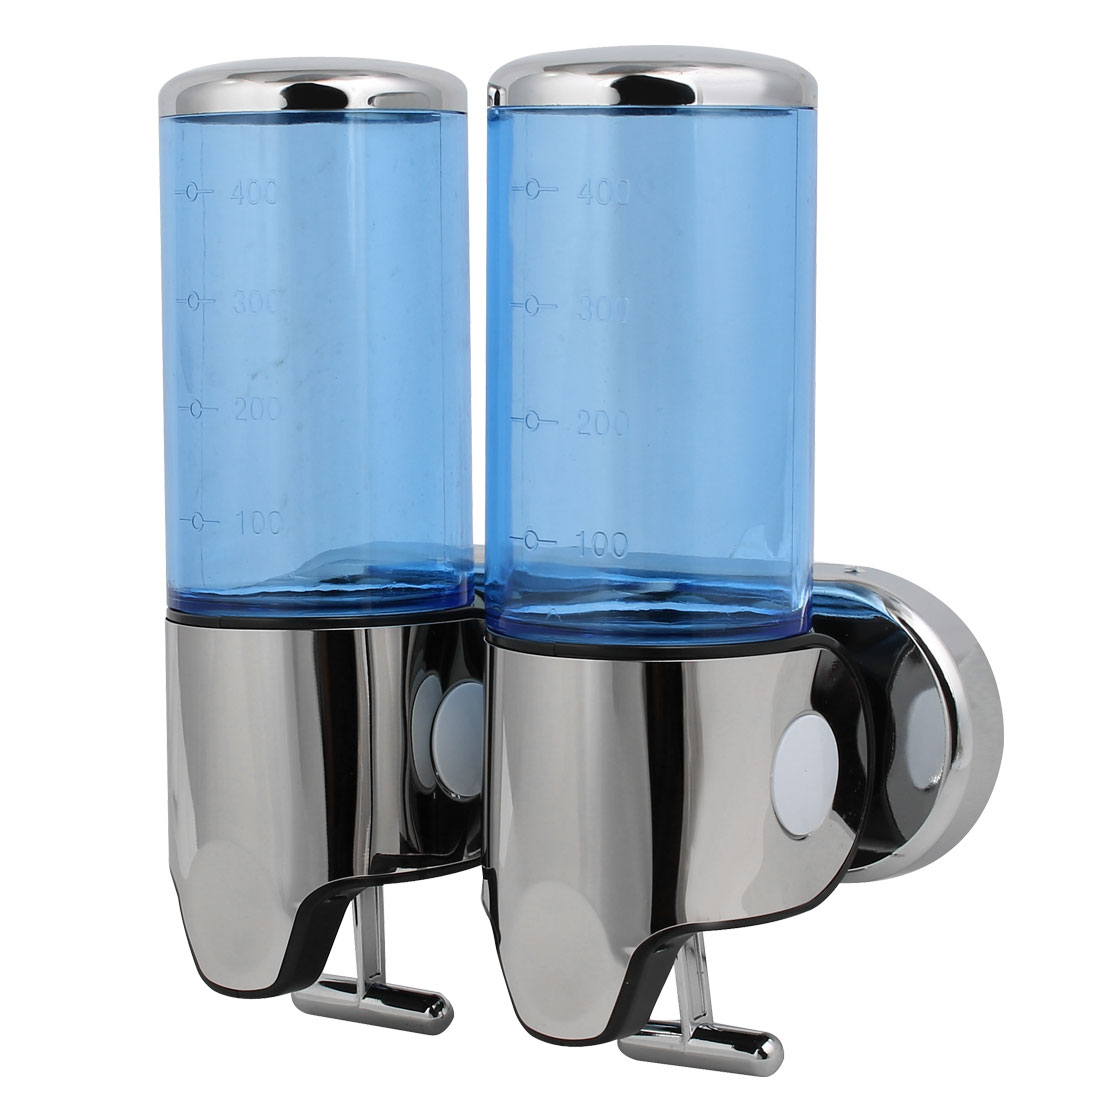 Uxcell ABS Plastic Wall Mount Double Chember Soap Dispenser Blue, 17 oz Each Capacity